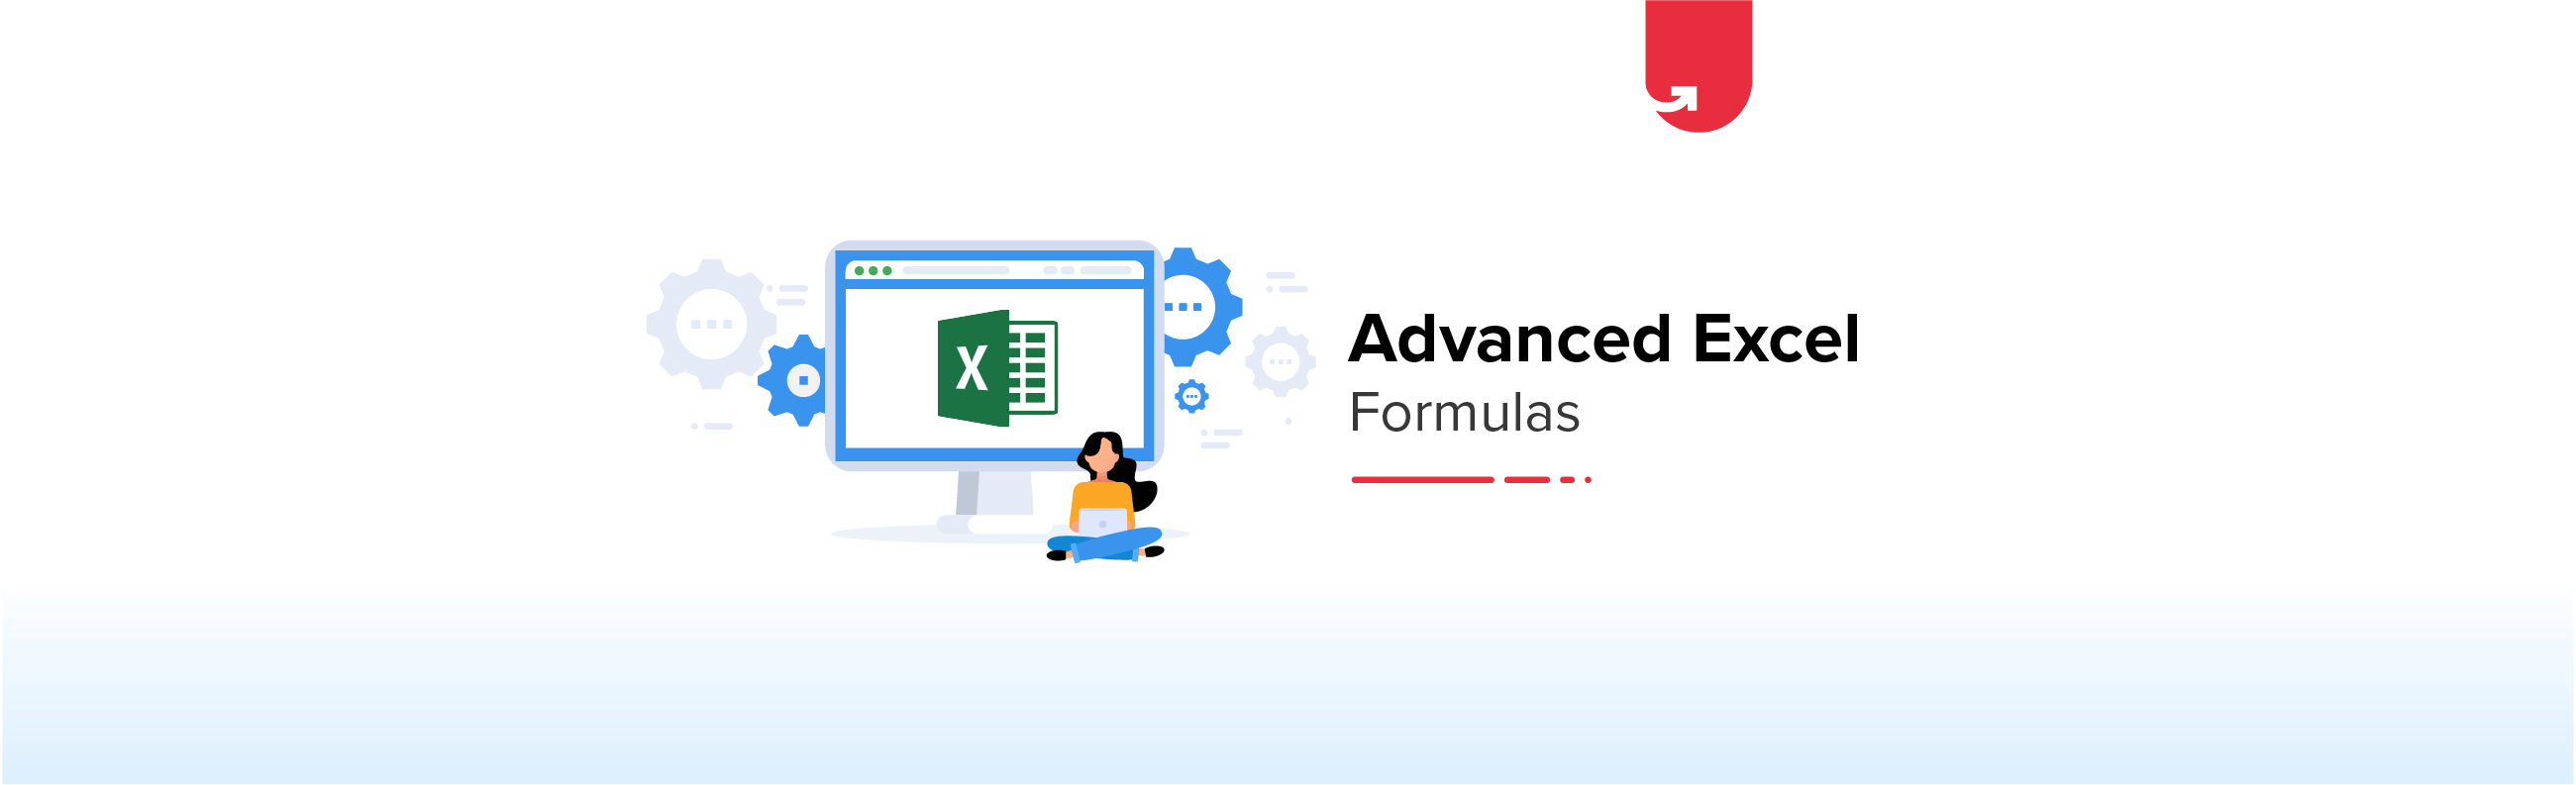 20 Advanced Excel Formulas   A Must Know For All Professionals ...